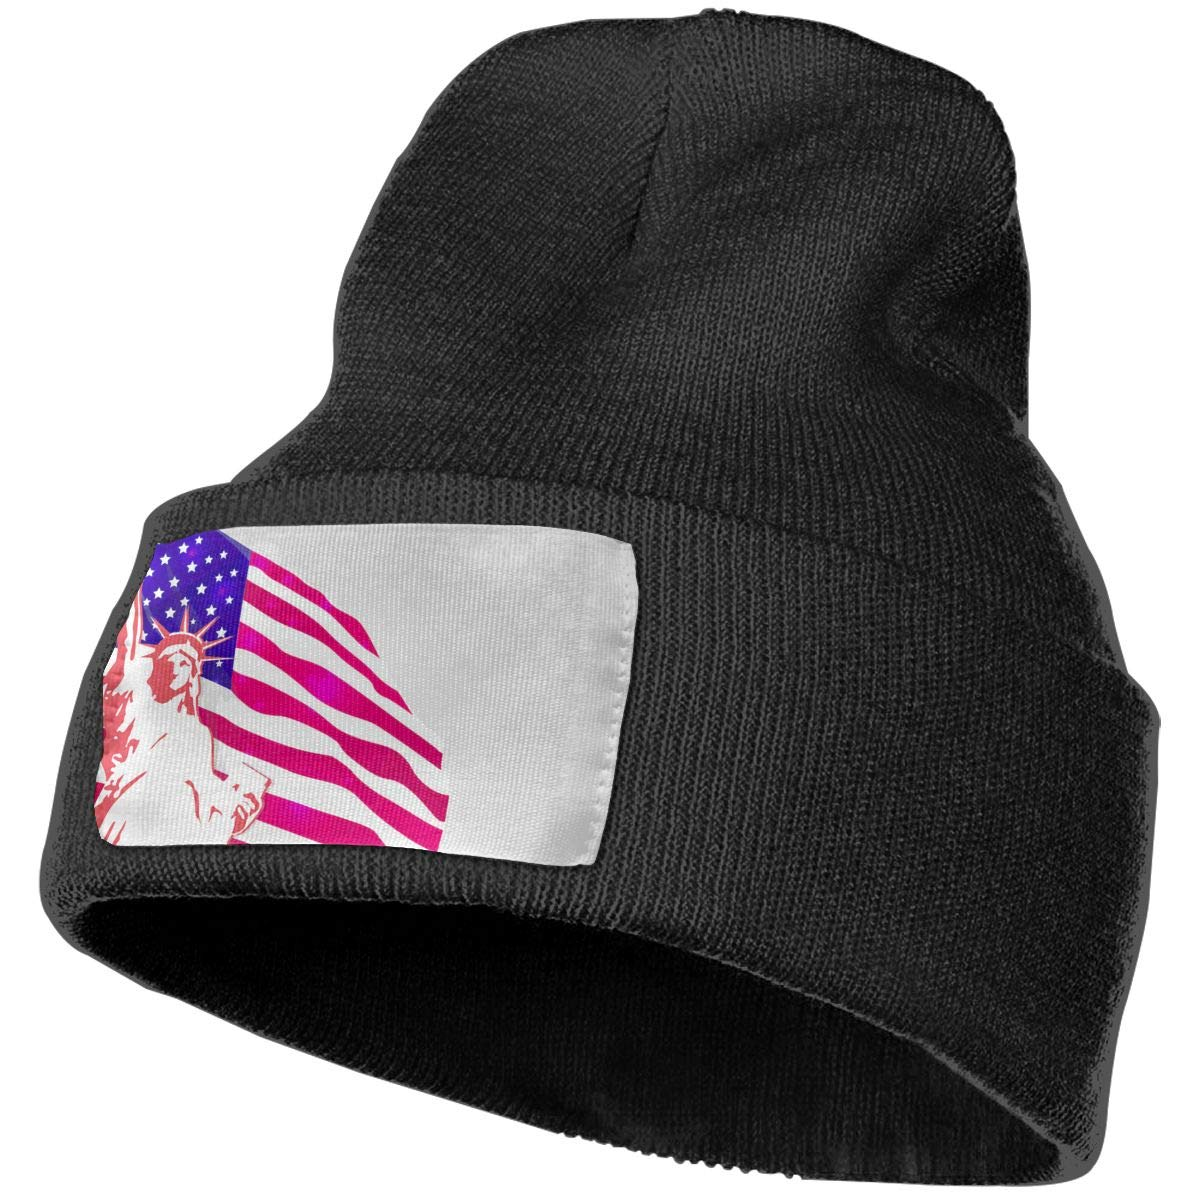 JimHappy American Flag Hat for Men and Women Winter Warm Hats Knit Slouchy Thick Skull Cap Black